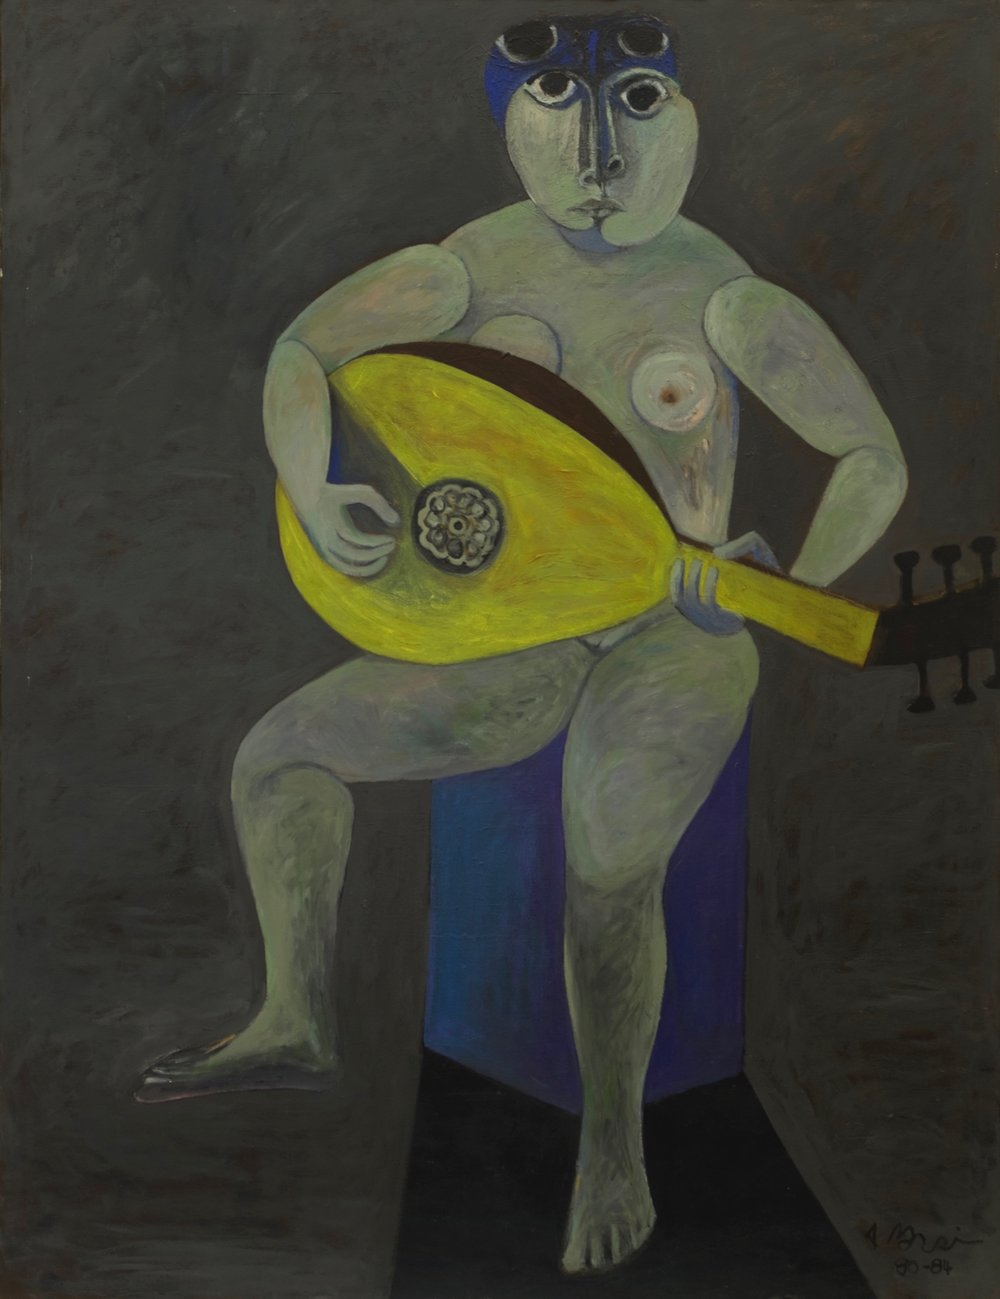 Ahmed-Morsi-Untitled-(Lute-Plater)-1980-1984.jpg